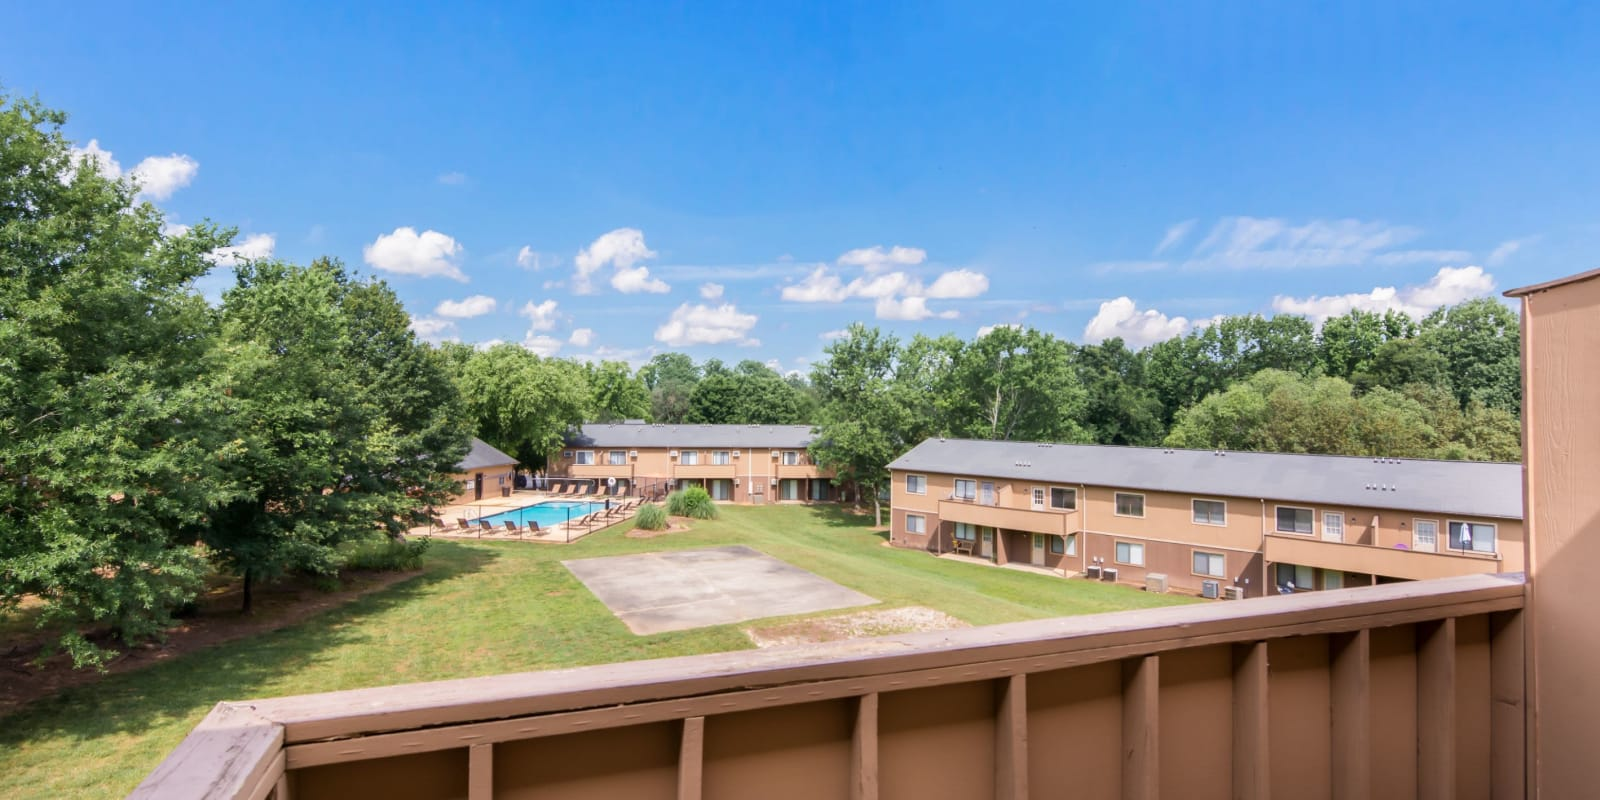 Private balcony overlooking the well-manicured landscape at 1022 West Apartment Homes in Gaffney, South Carolina